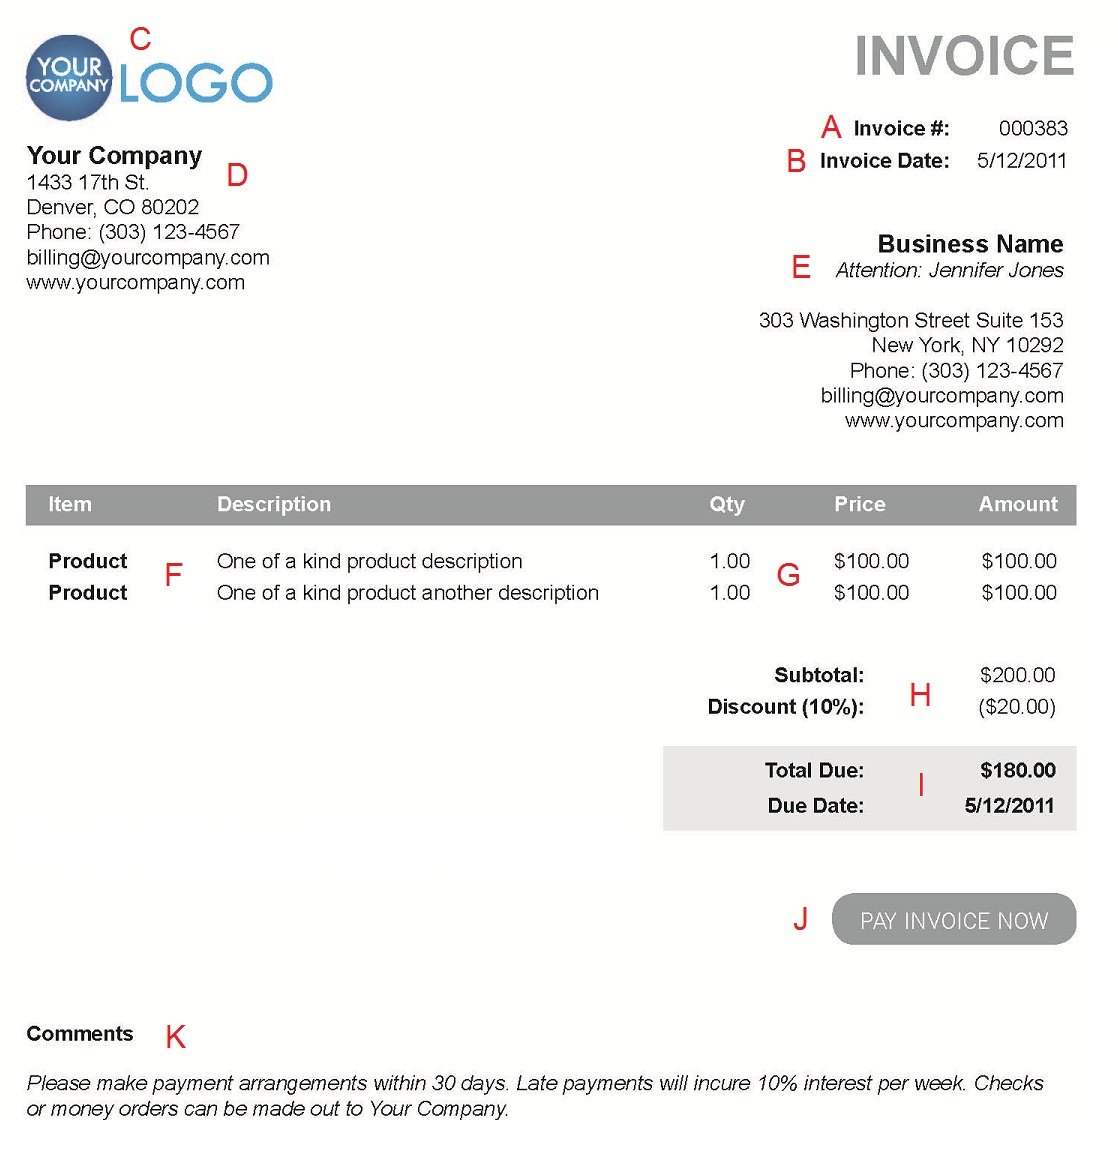 Usdgus  Winning The  Different Sections Of An Electronic Payment Invoice With Great A  With Charming Invoice Processing System Also What To Put On An Invoice In Addition How To Determine Invoice Price On A New Car And Free Vat Invoice Template As Well As Invoicing Software Open Source Additionally How Make Invoice From Paysimplecom With Usdgus  Great The  Different Sections Of An Electronic Payment Invoice With Charming A  And Winning Invoice Processing System Also What To Put On An Invoice In Addition How To Determine Invoice Price On A New Car From Paysimplecom